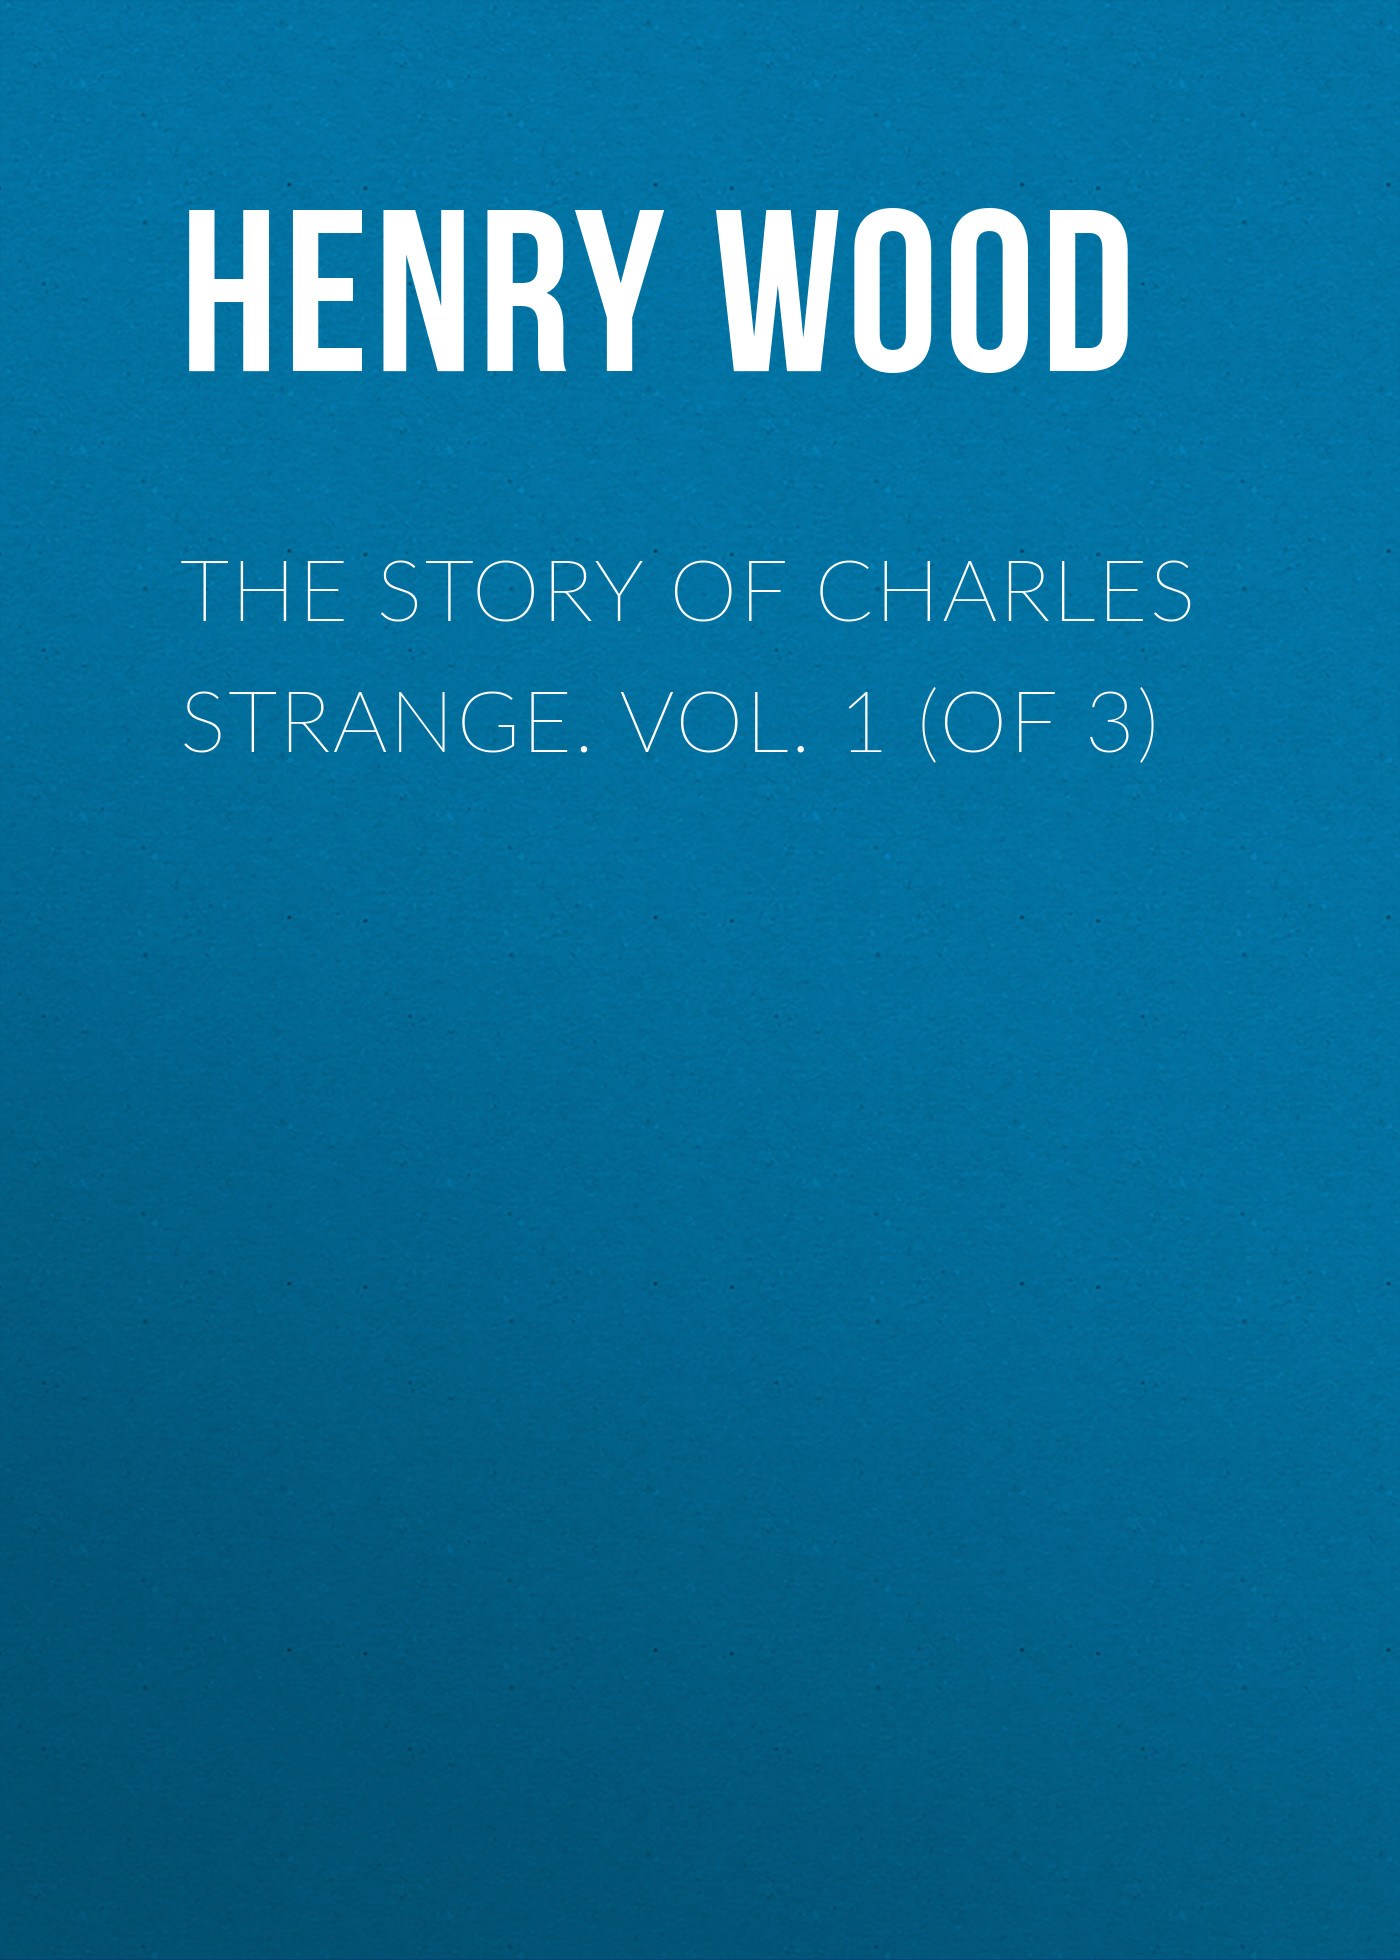 Henry Wood The Story of Charles Strange. Vol. 1 (of 3) bucke charles ruins of ancient cities vol 1 of 2